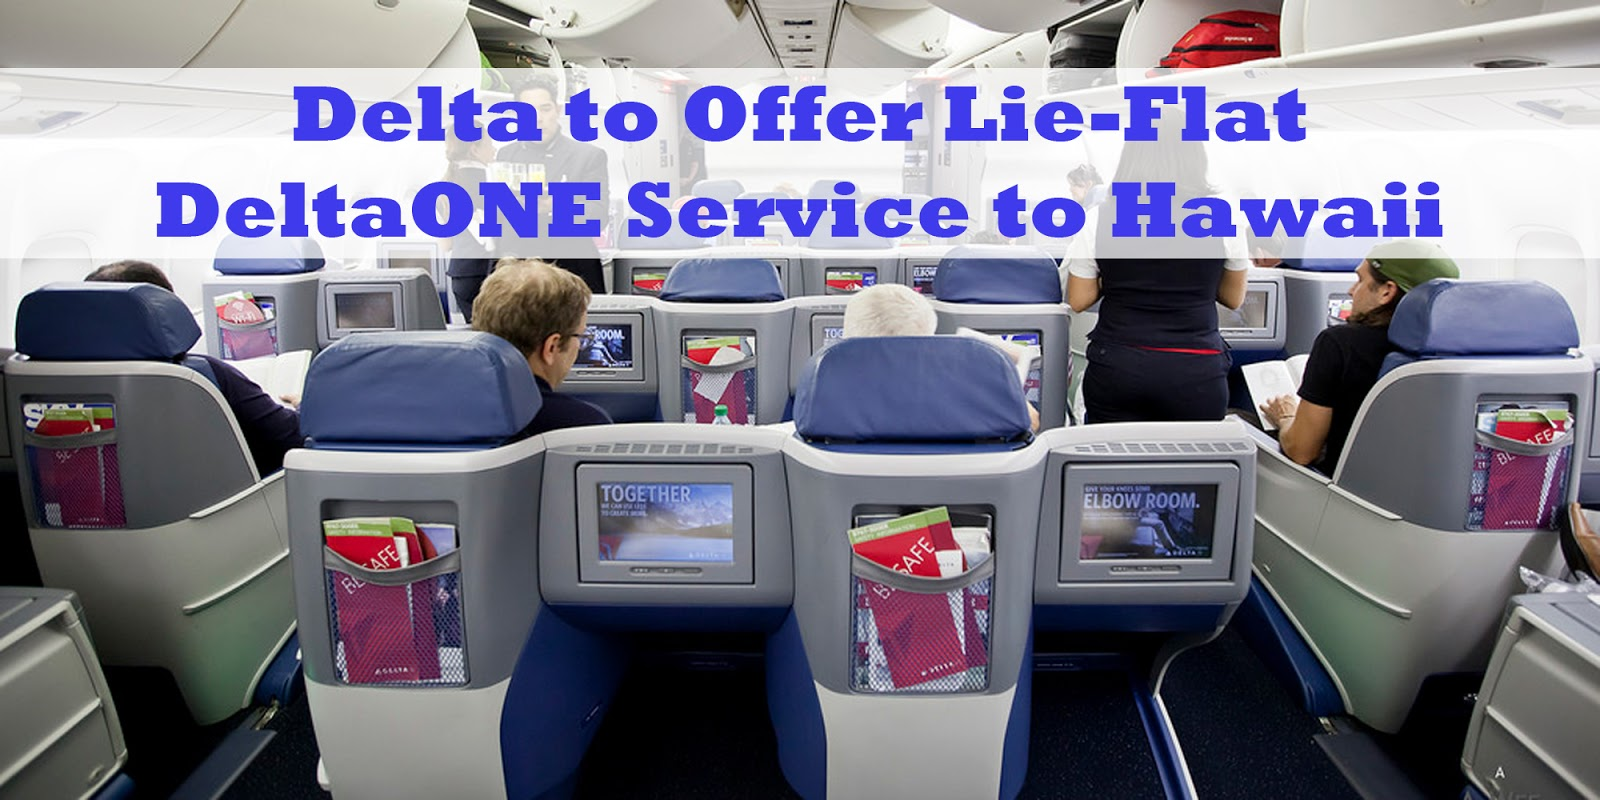 Deltas New Medallion Upgrade Policy Tells Us DeltaONE Is Coming To Hawaii And Complimentary Upgrades On International Routes